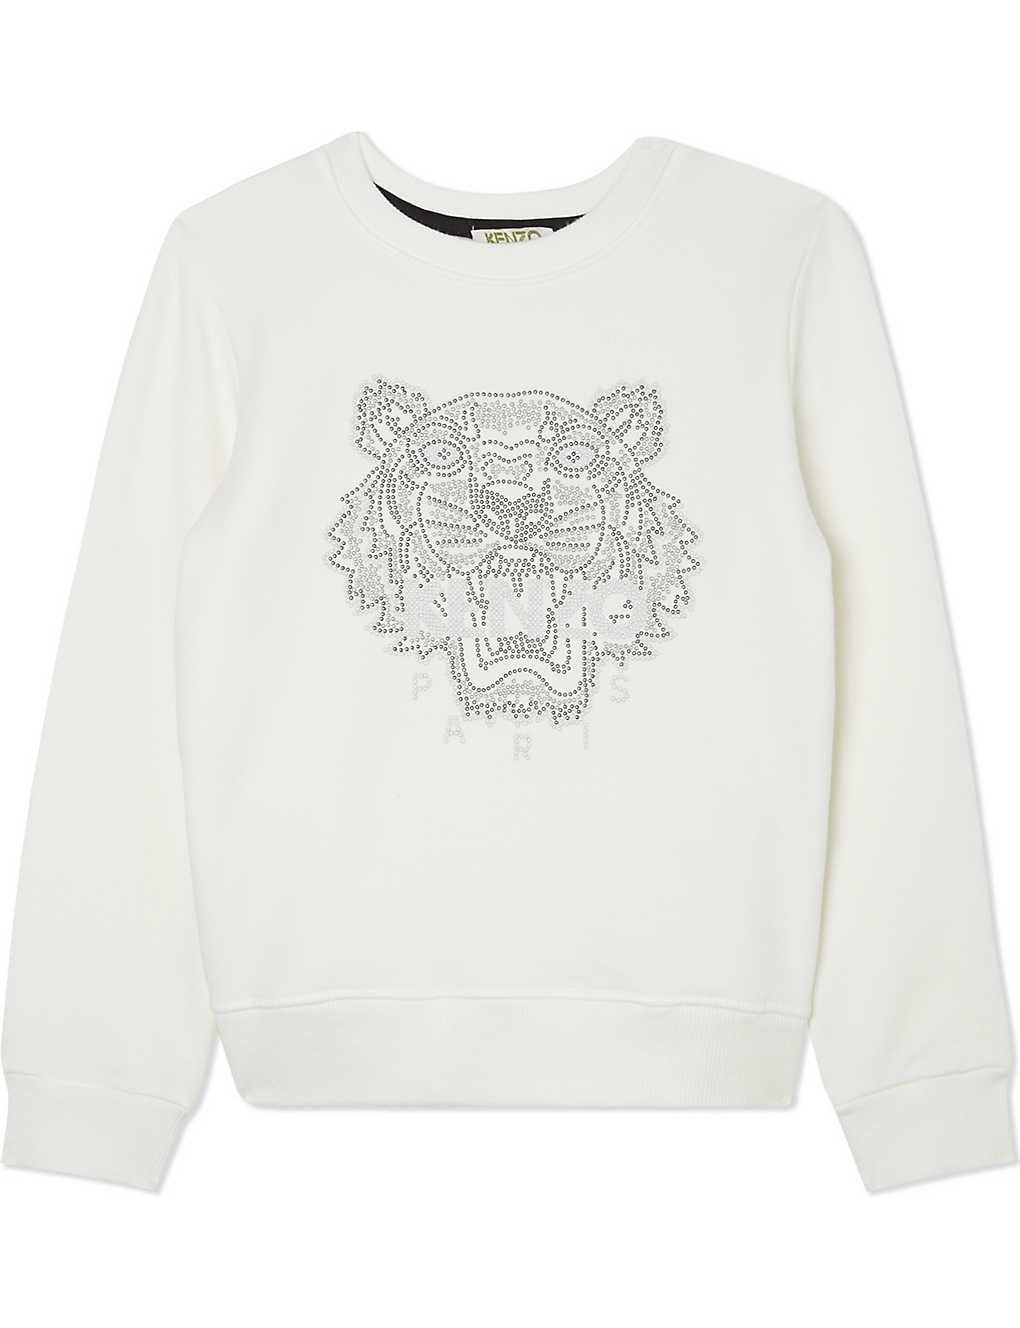 365cab0c KENZO - Beaded tiger cotton jumper 4-16 years | Selfridges.com